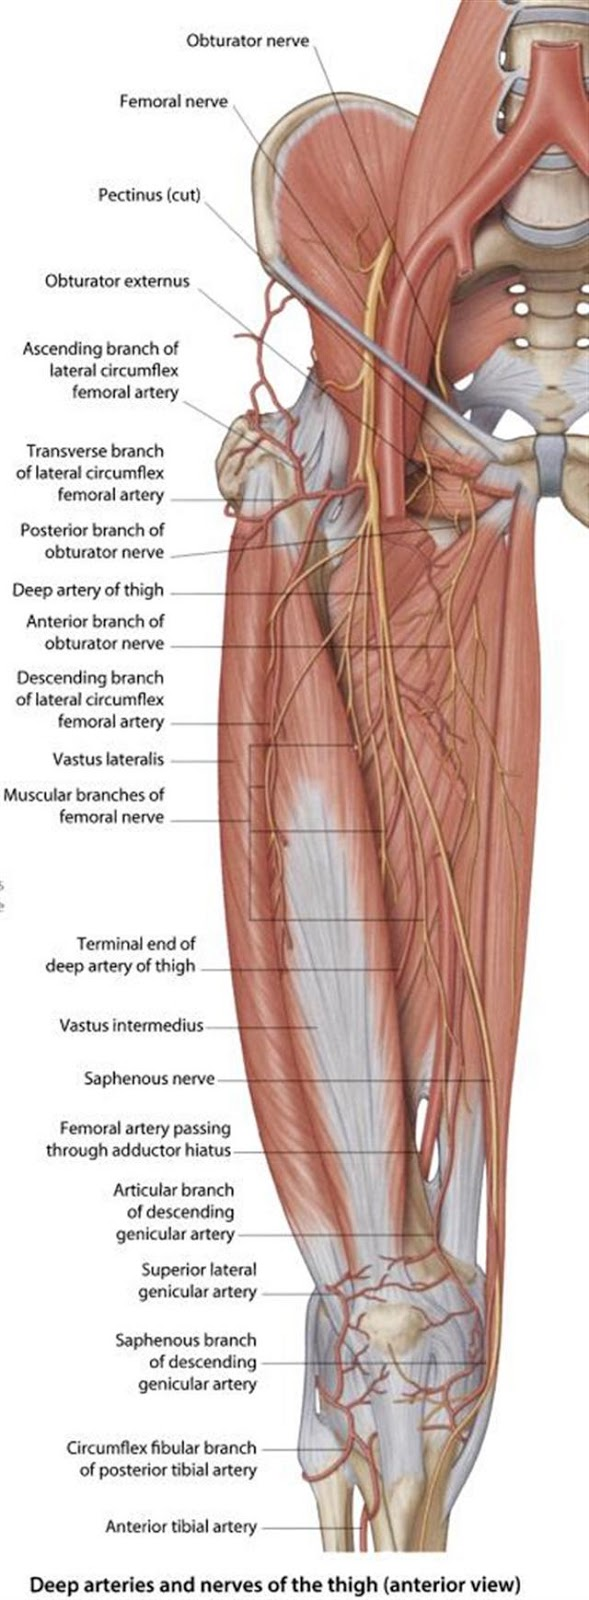 quadriceps tendon rupture: femoral nerve block, Muscles